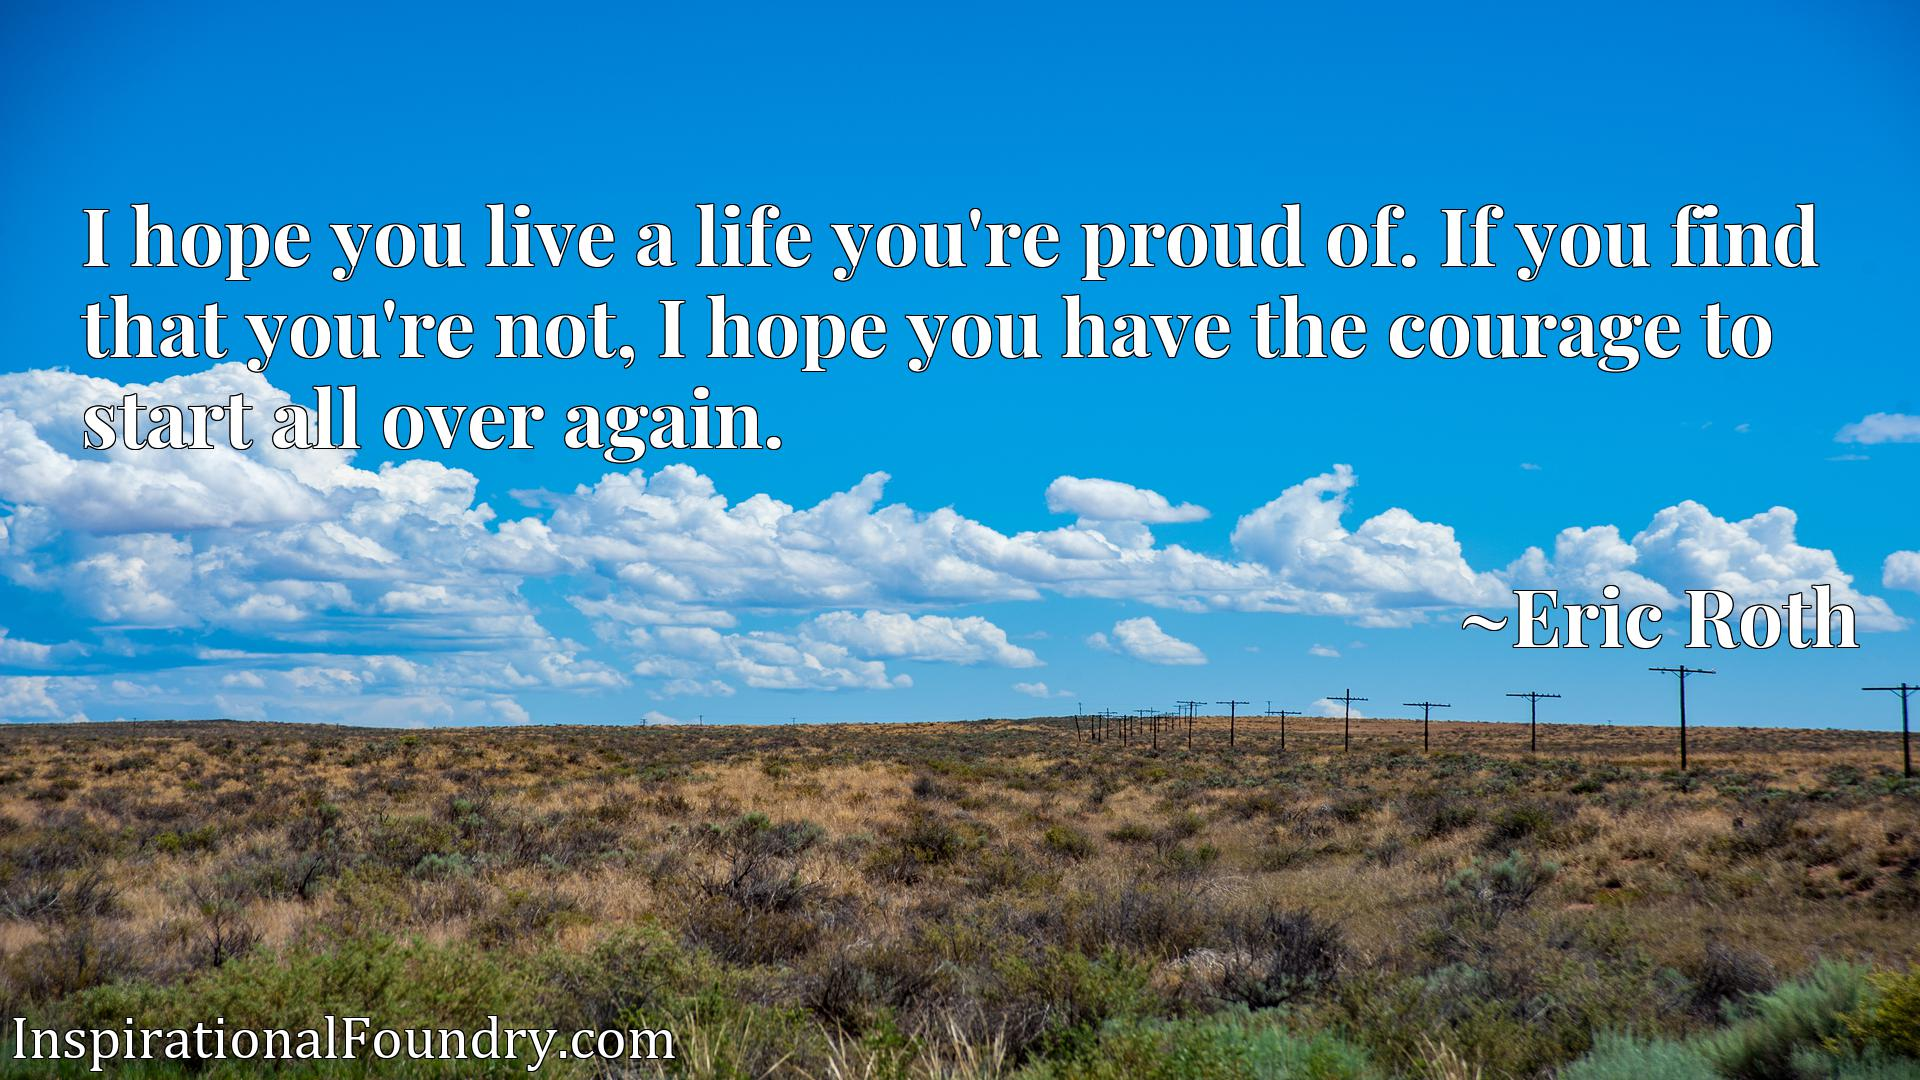 I hope you live a life you're proud of. If you find that you're not, I hope you have the courage to start all over again.